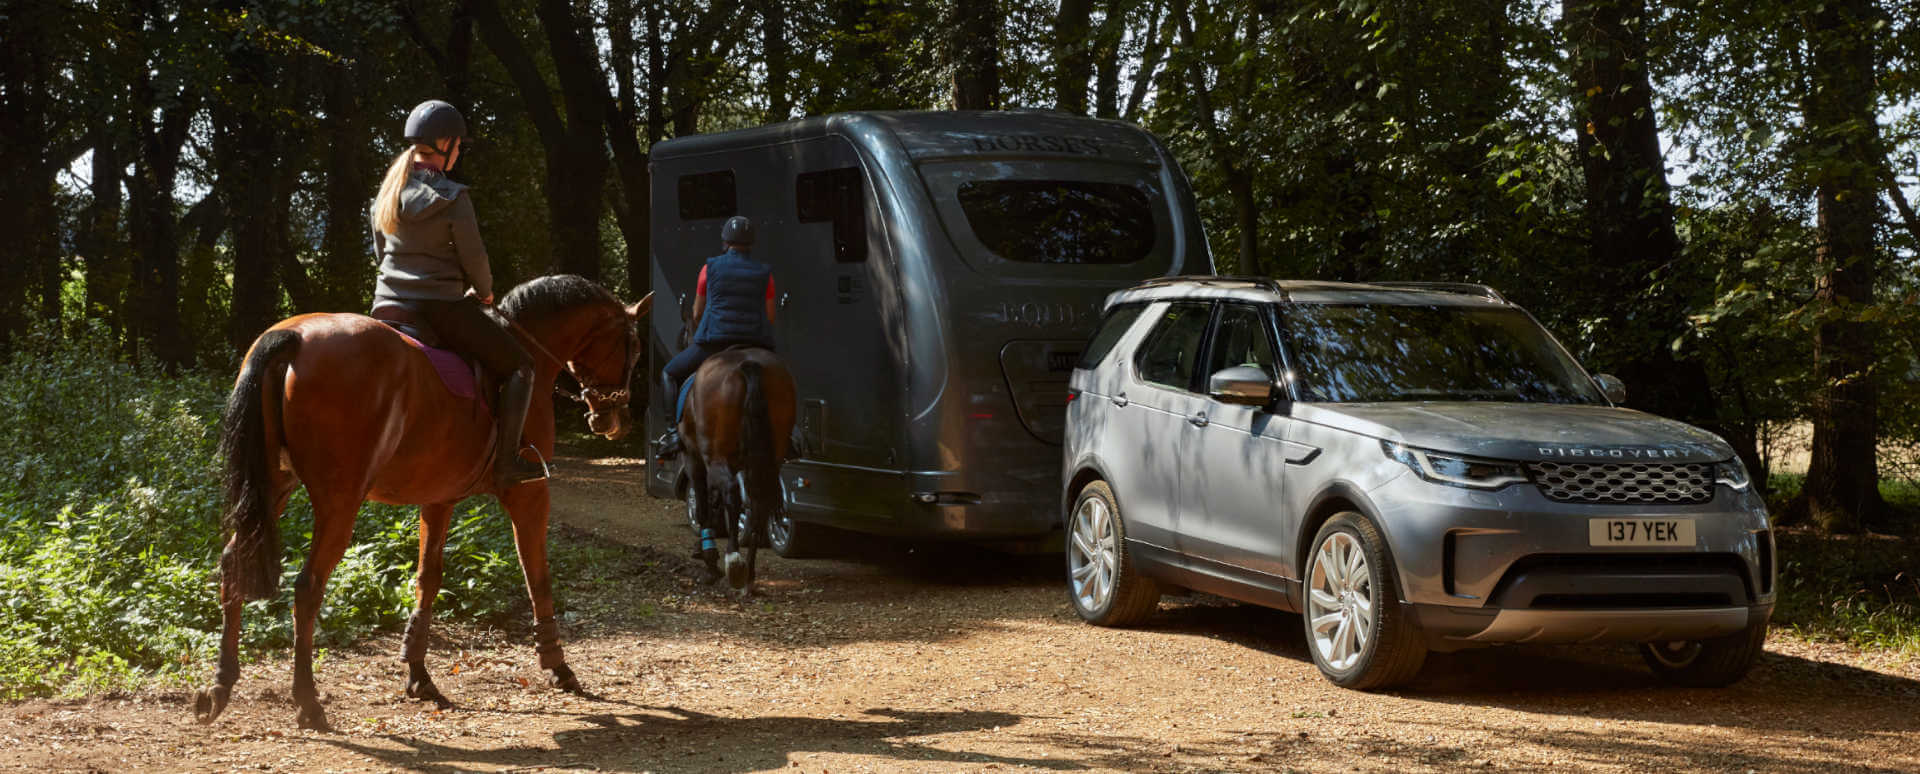 Land Rover Discovery: Towing a Horsebox